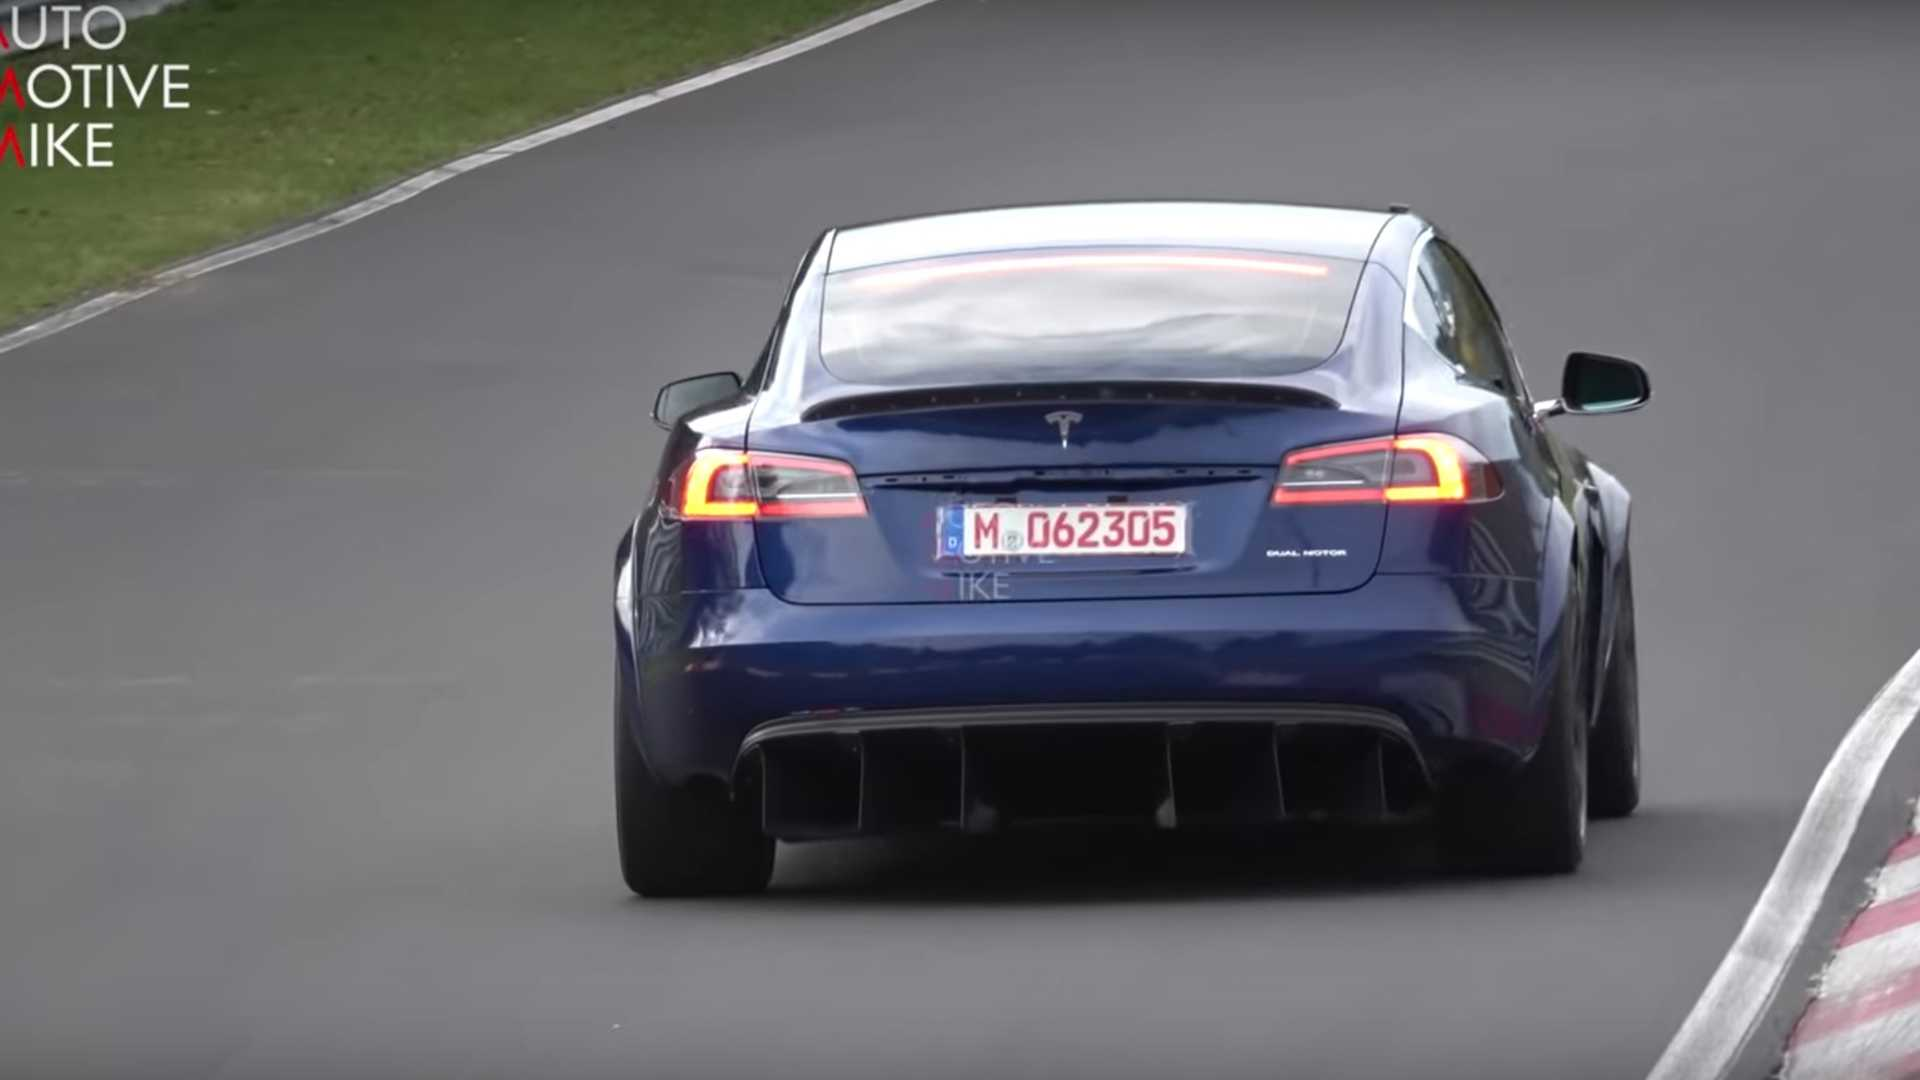 Mean Tesla Model S spied in action at the Nurburgring